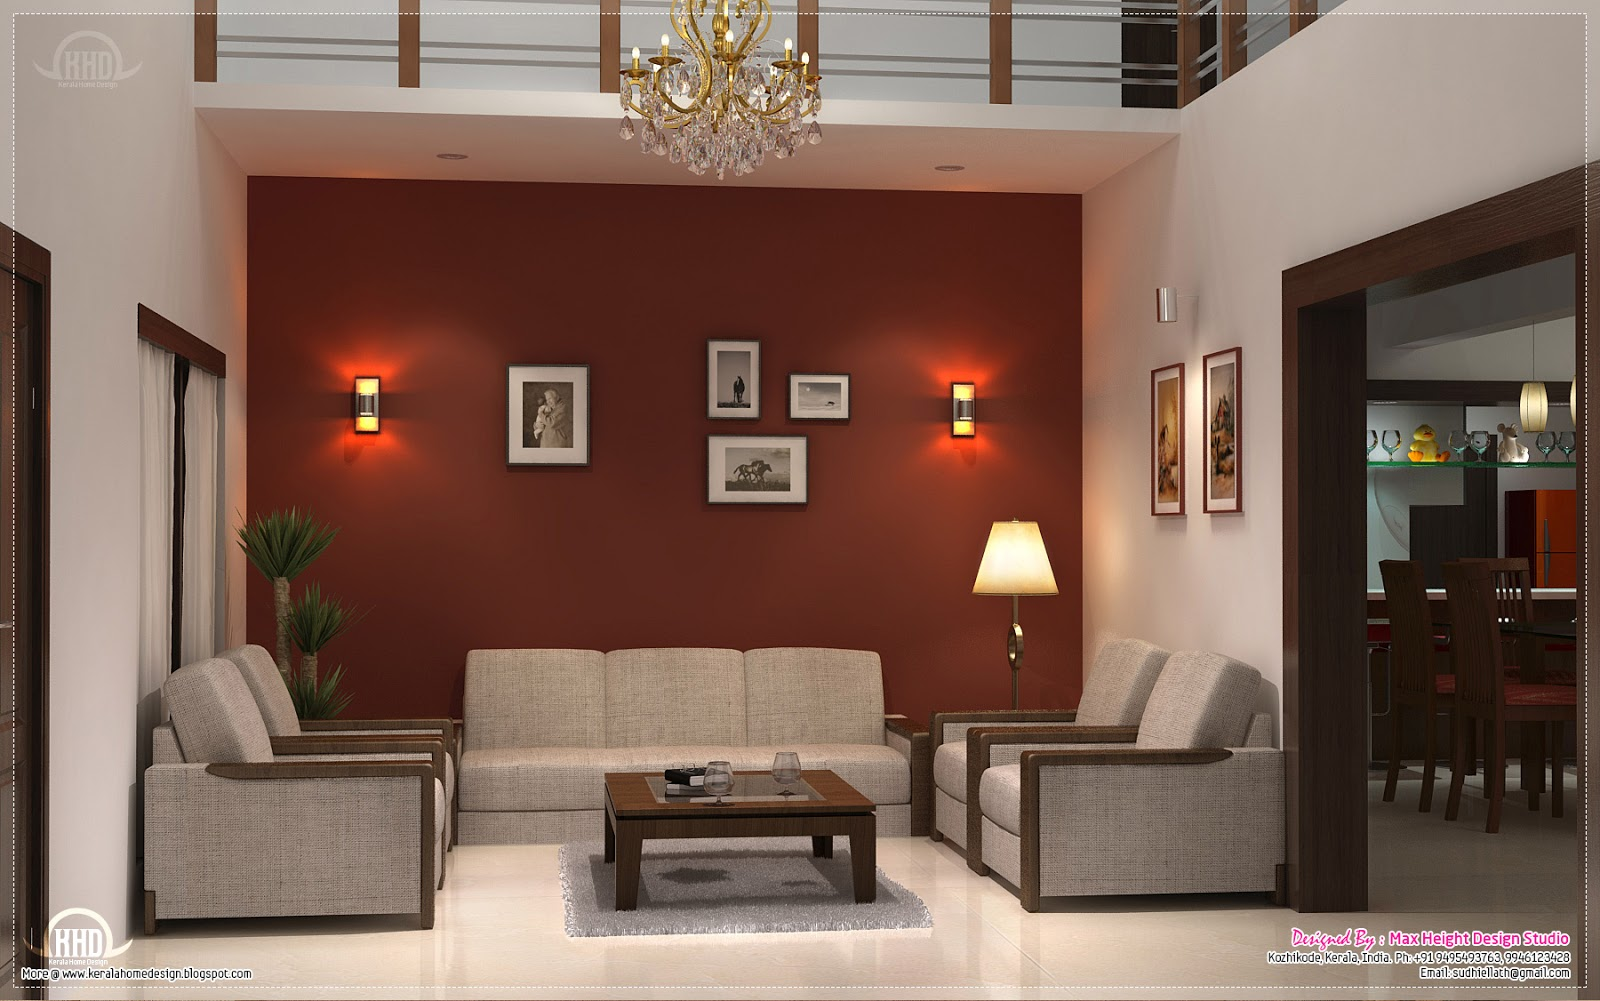 home interior design ideas home kerala plans. Black Bedroom Furniture Sets. Home Design Ideas